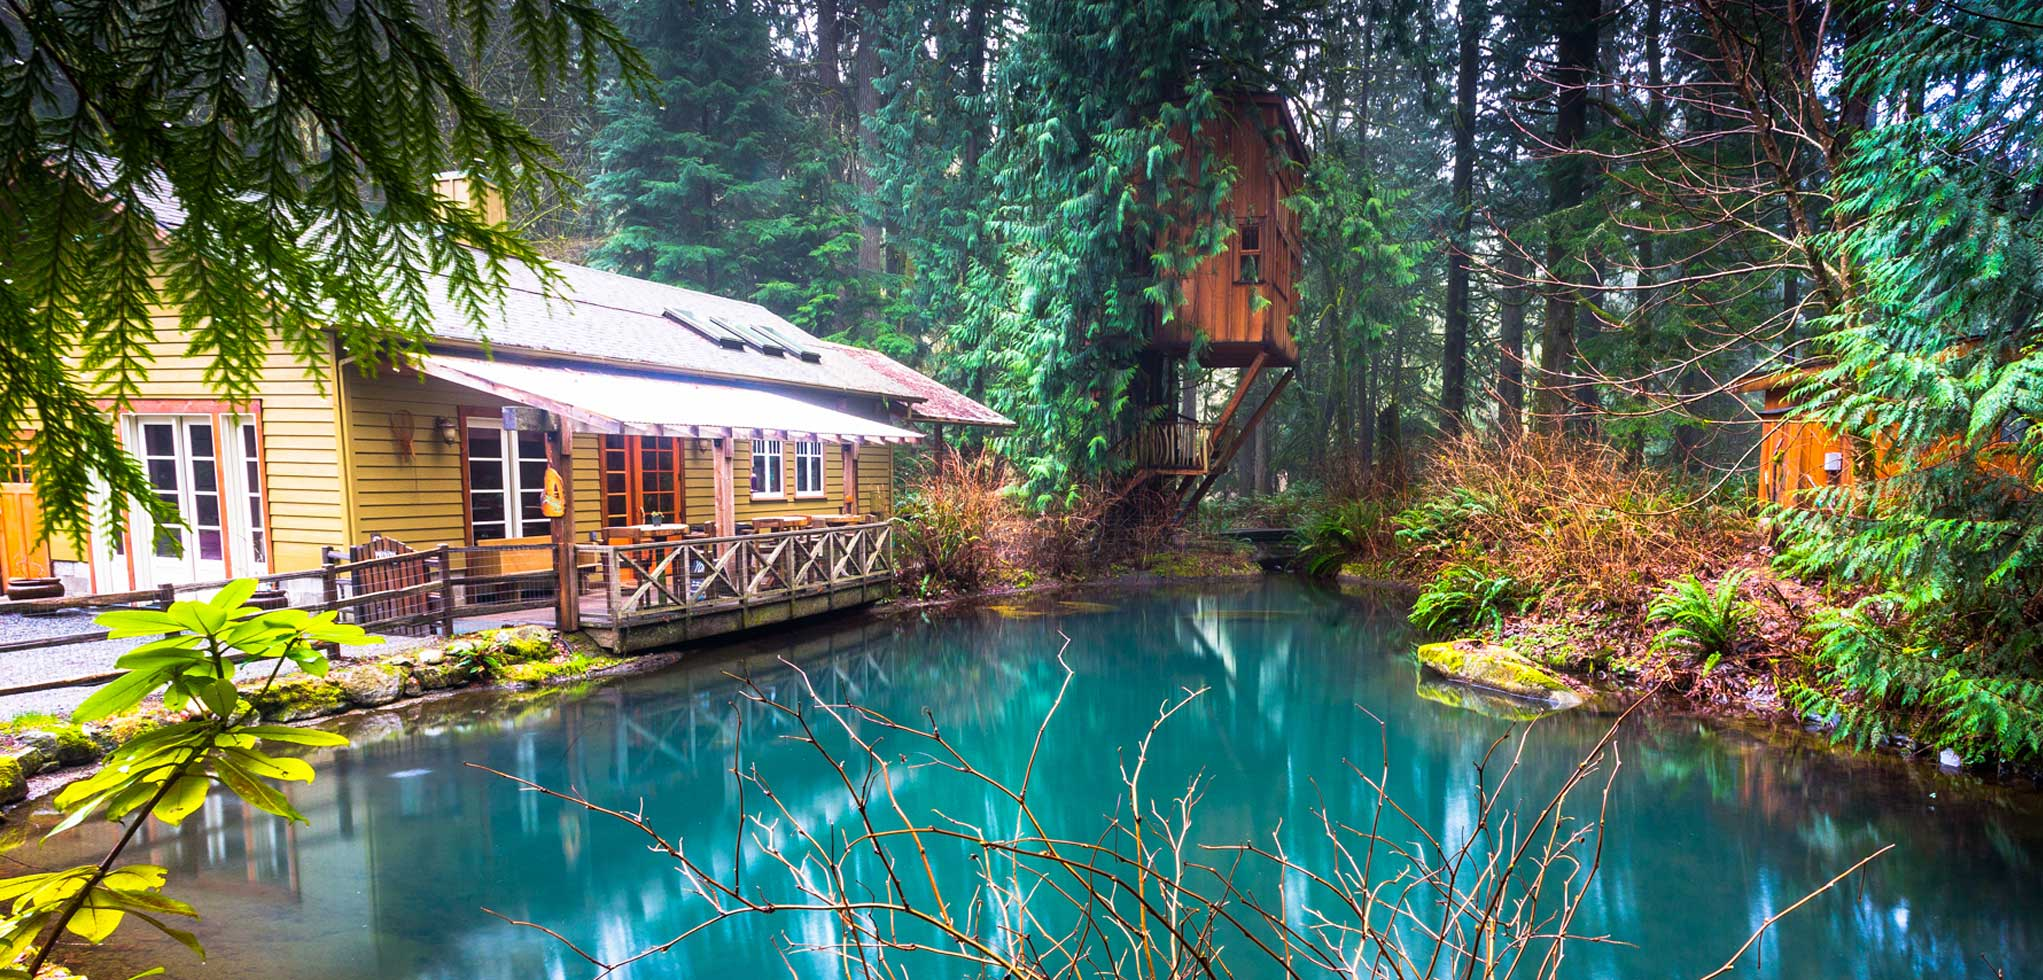 Plan your Event at Treehouse Point in Fall City Washington